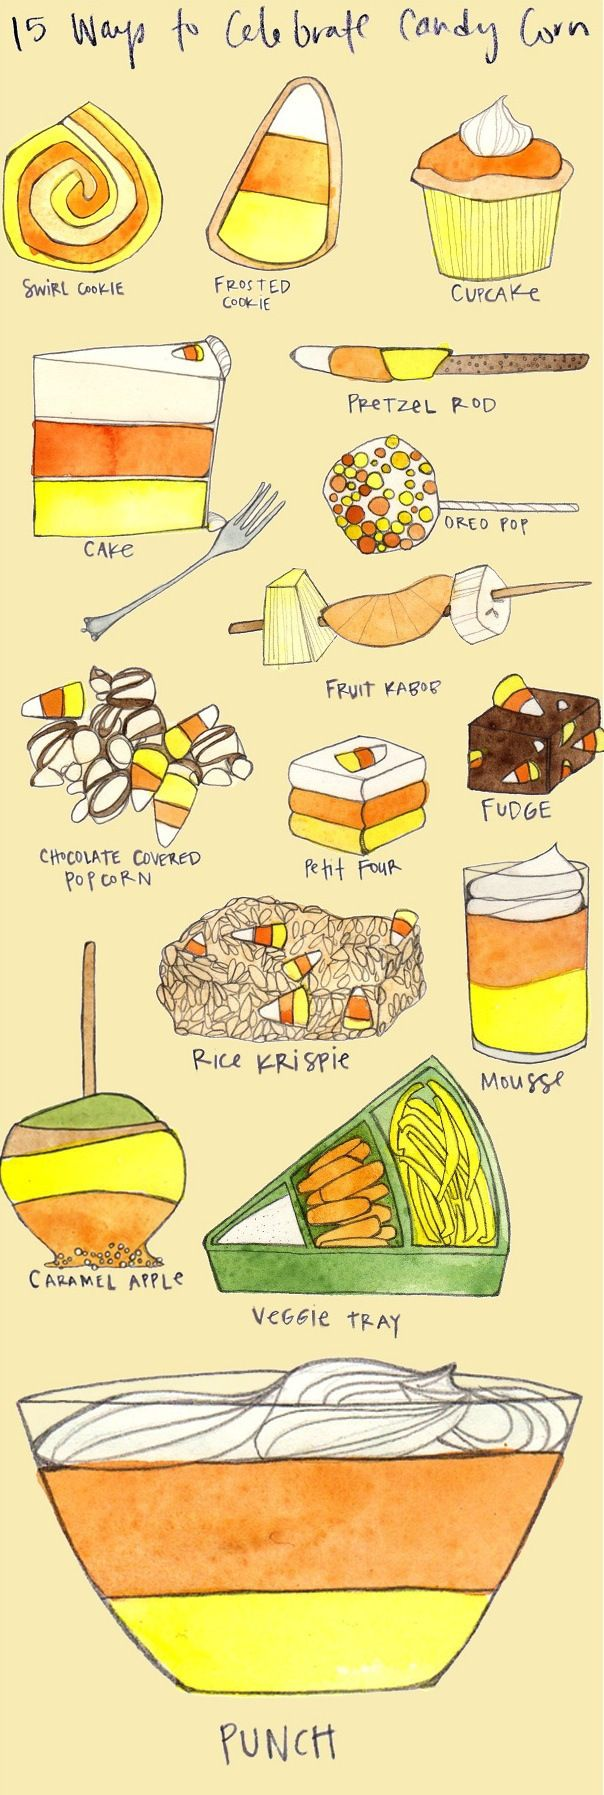 15 Adorable Halloween Recipes to Celebrate Candy Corn! From cupcakes to veggie trays to layered bunch bowls...